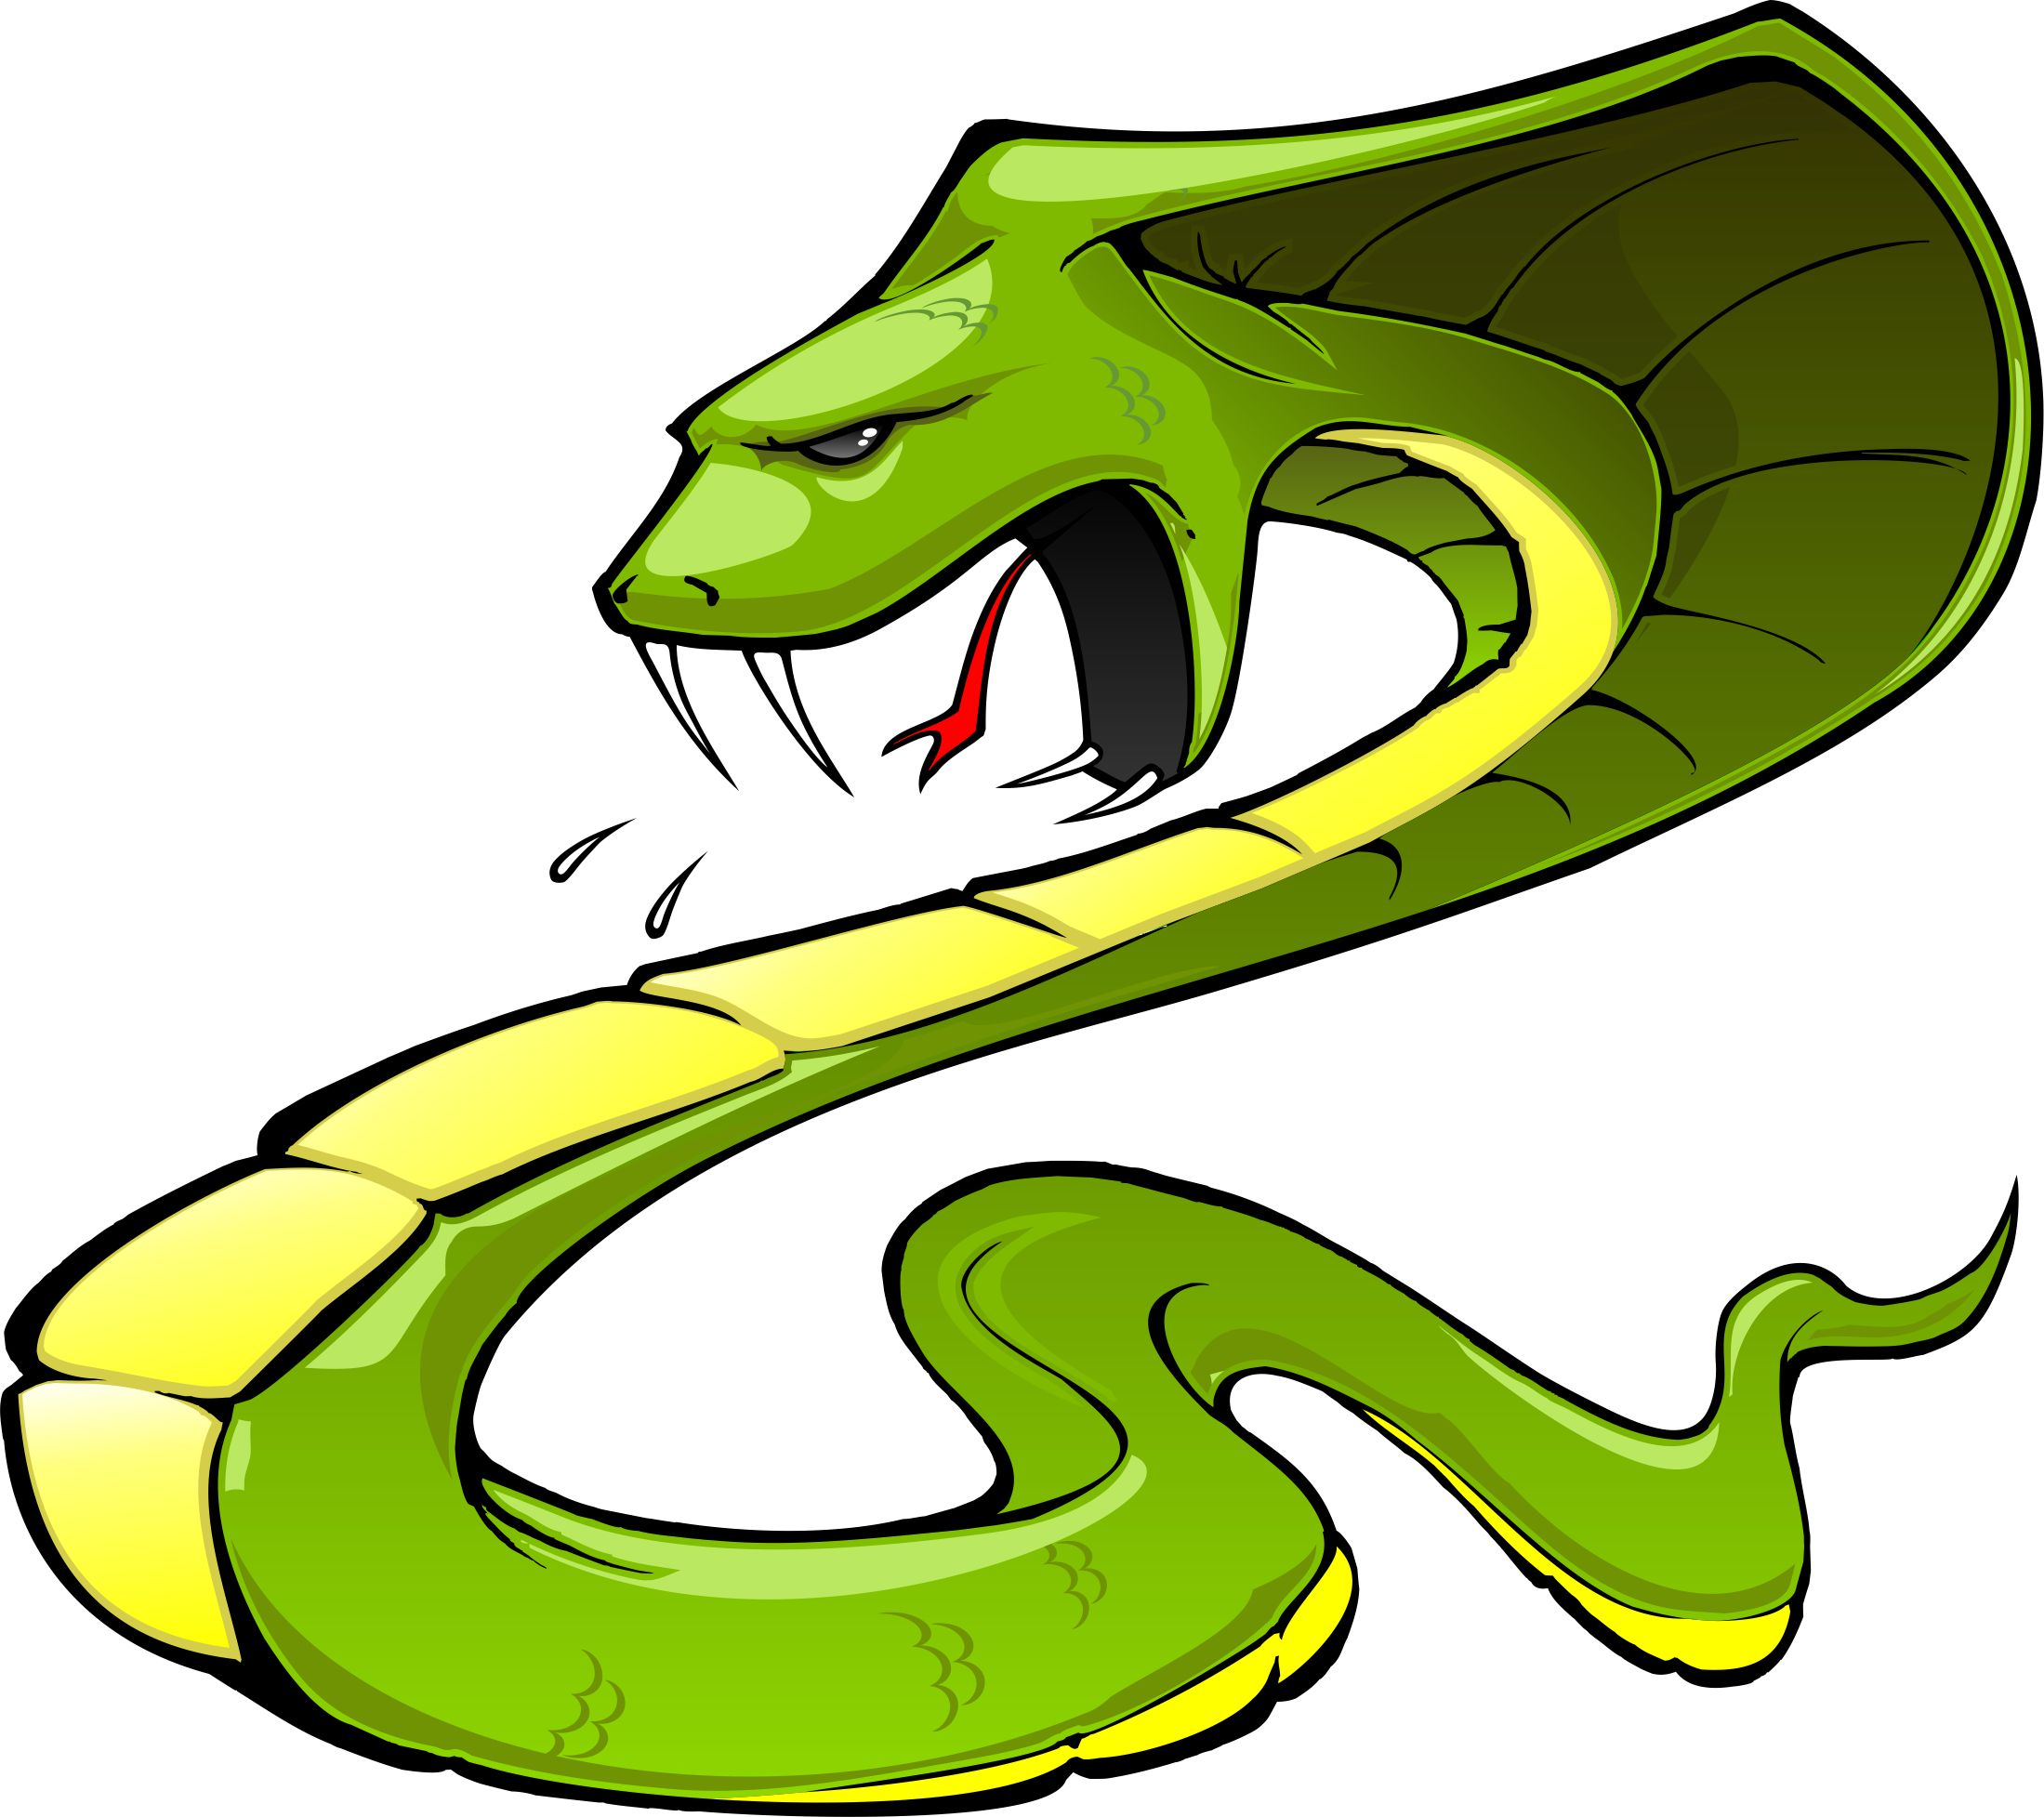 snake eyes clipart at getdrawings com free for personal use snake rh getdrawings com vipère clipart viper head clipart